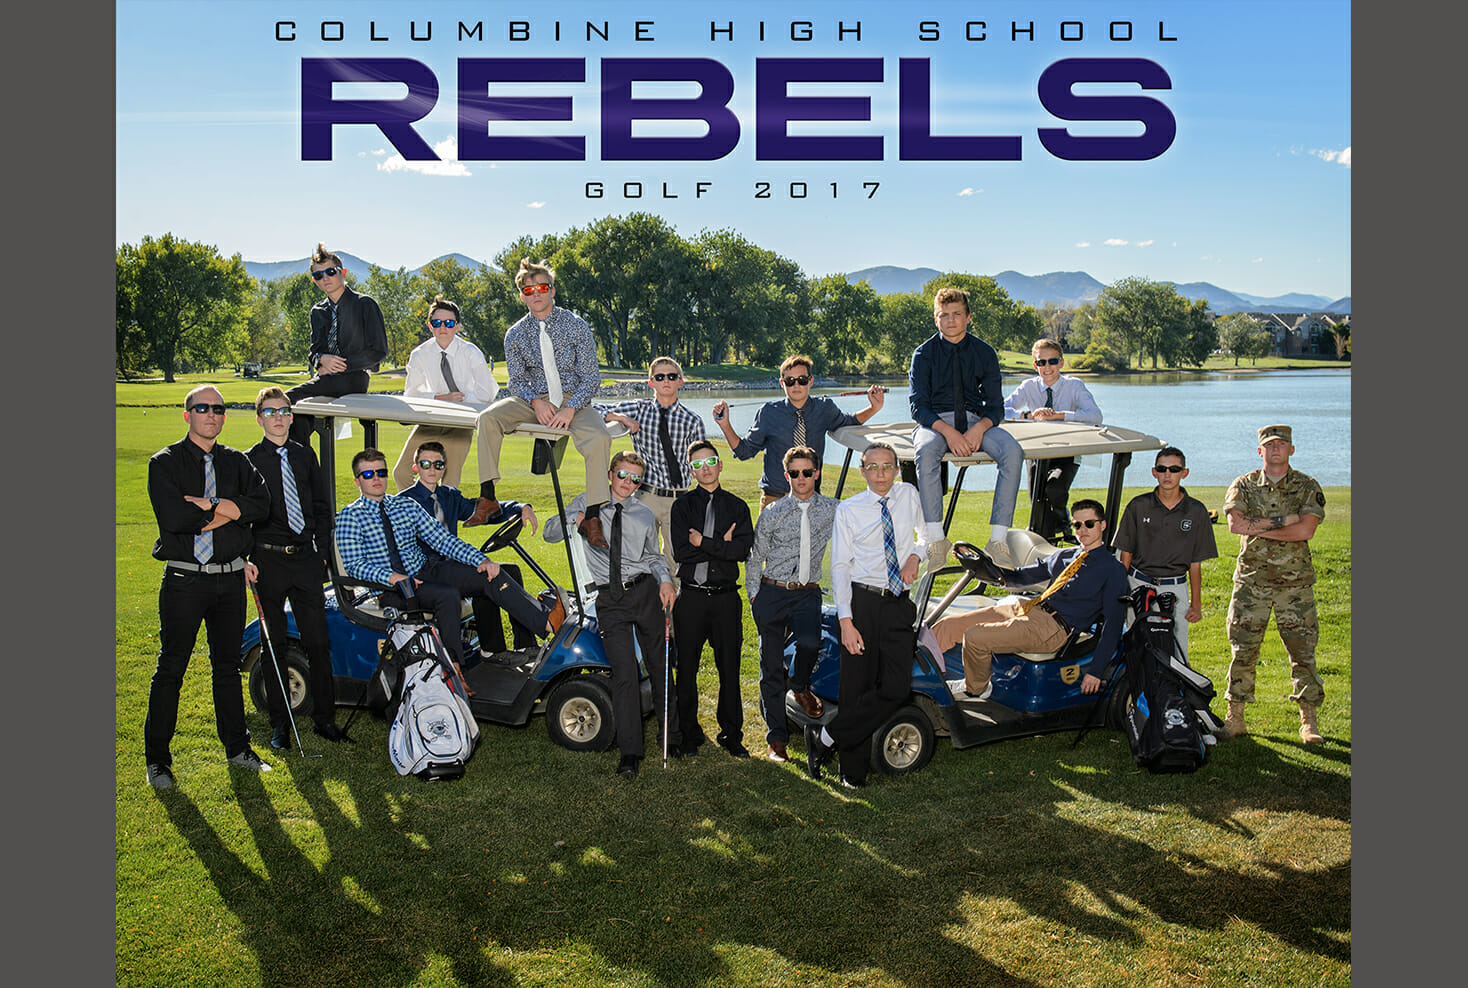 Columbine High School Golf Team Photo